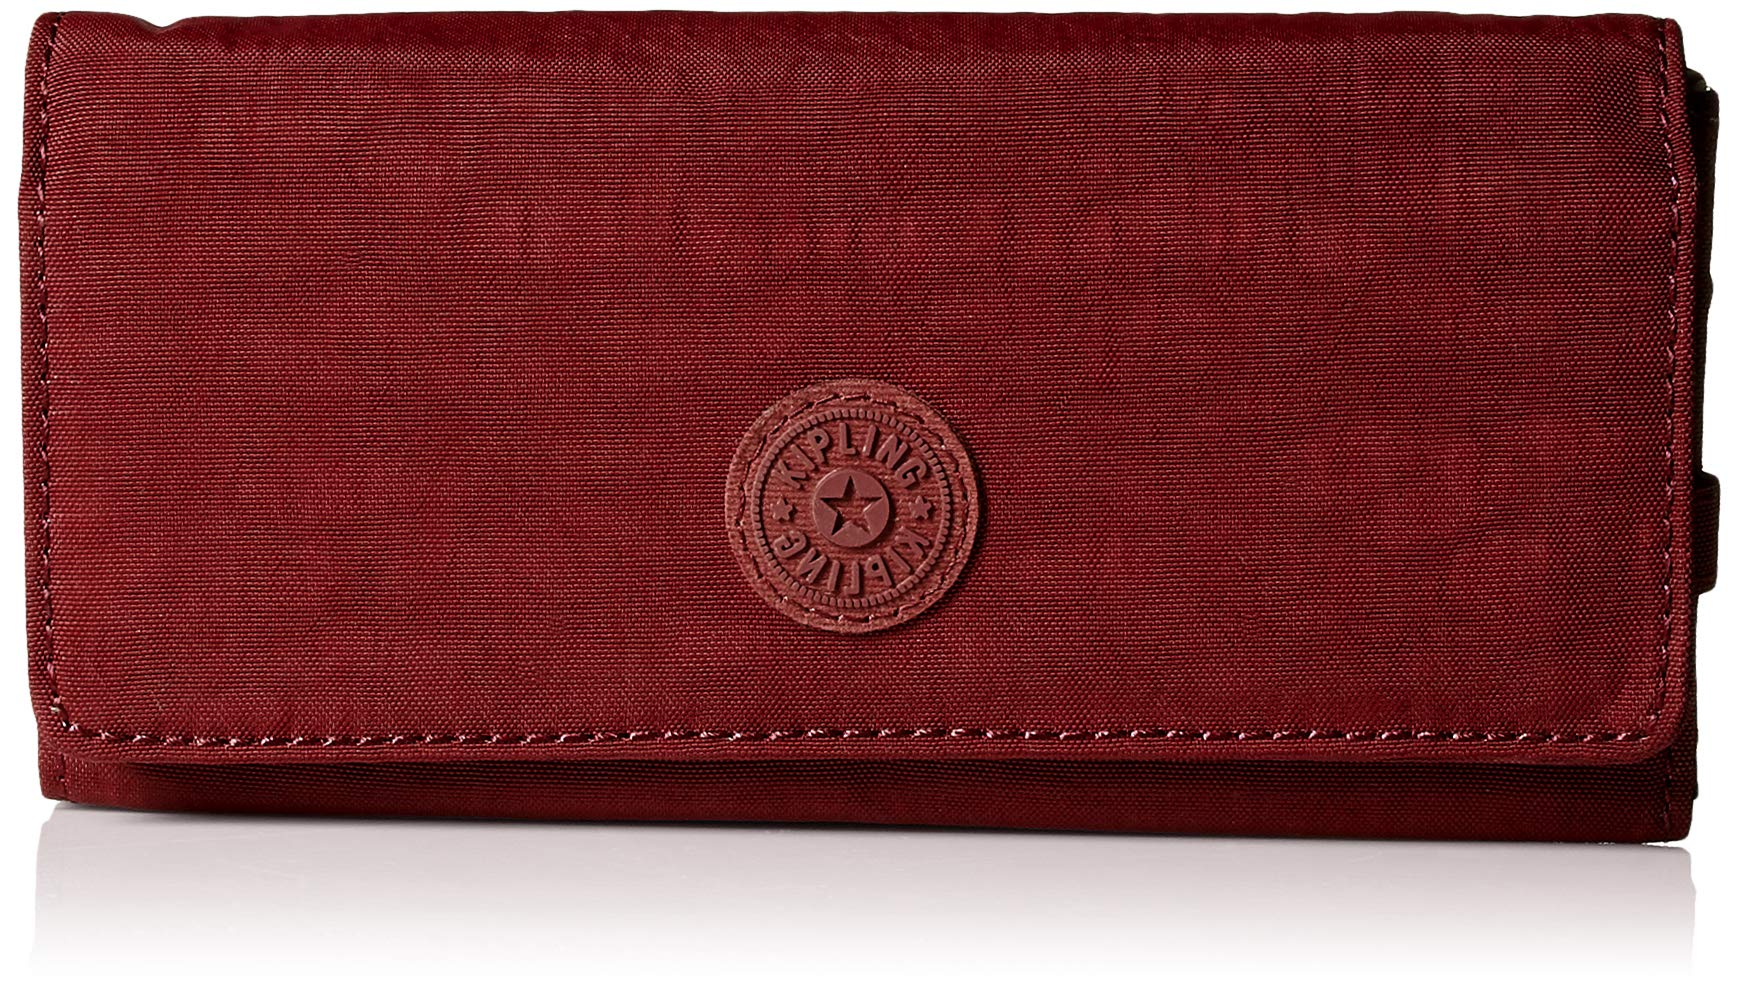 Kipling New Teddi Continental Wallet, Snap Closure, Brick Red